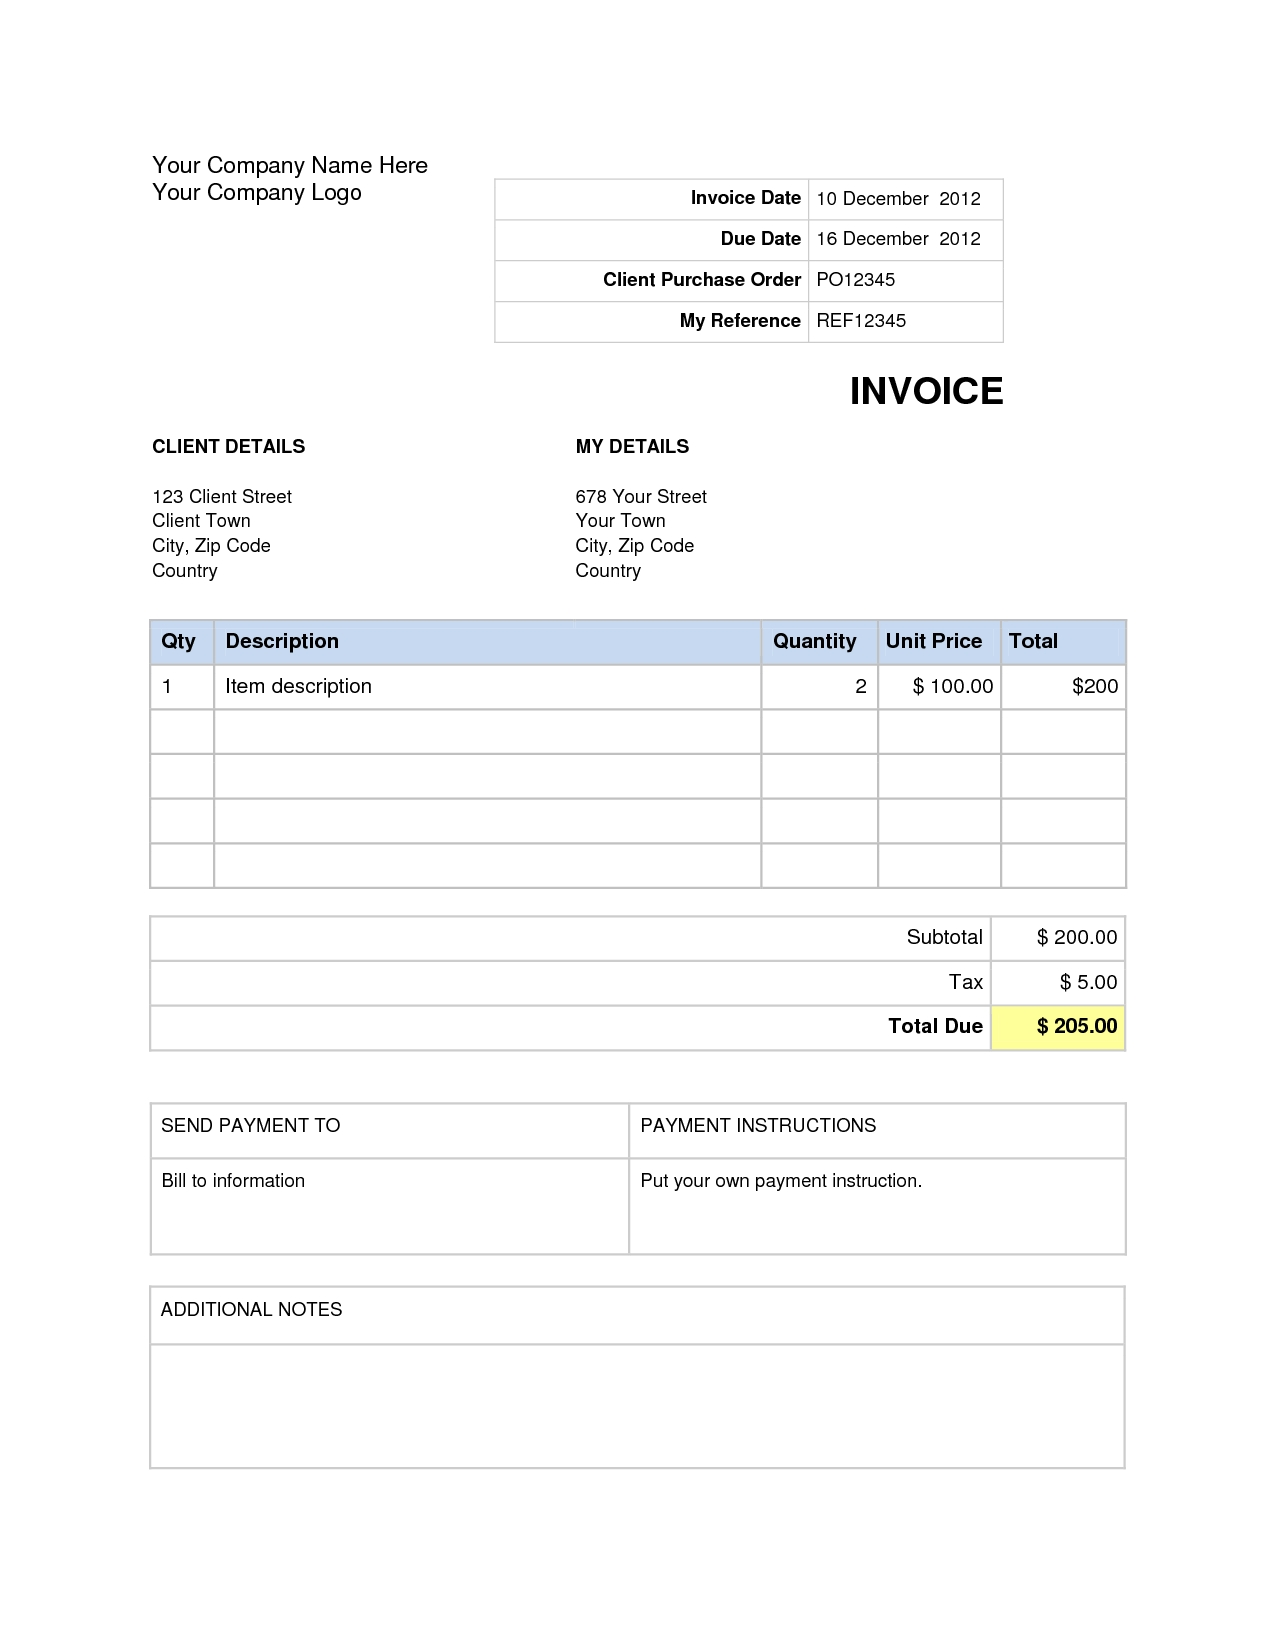 sample invoice format in word free invoice templates for microsoft word 11 invoice template 1275 X 1650